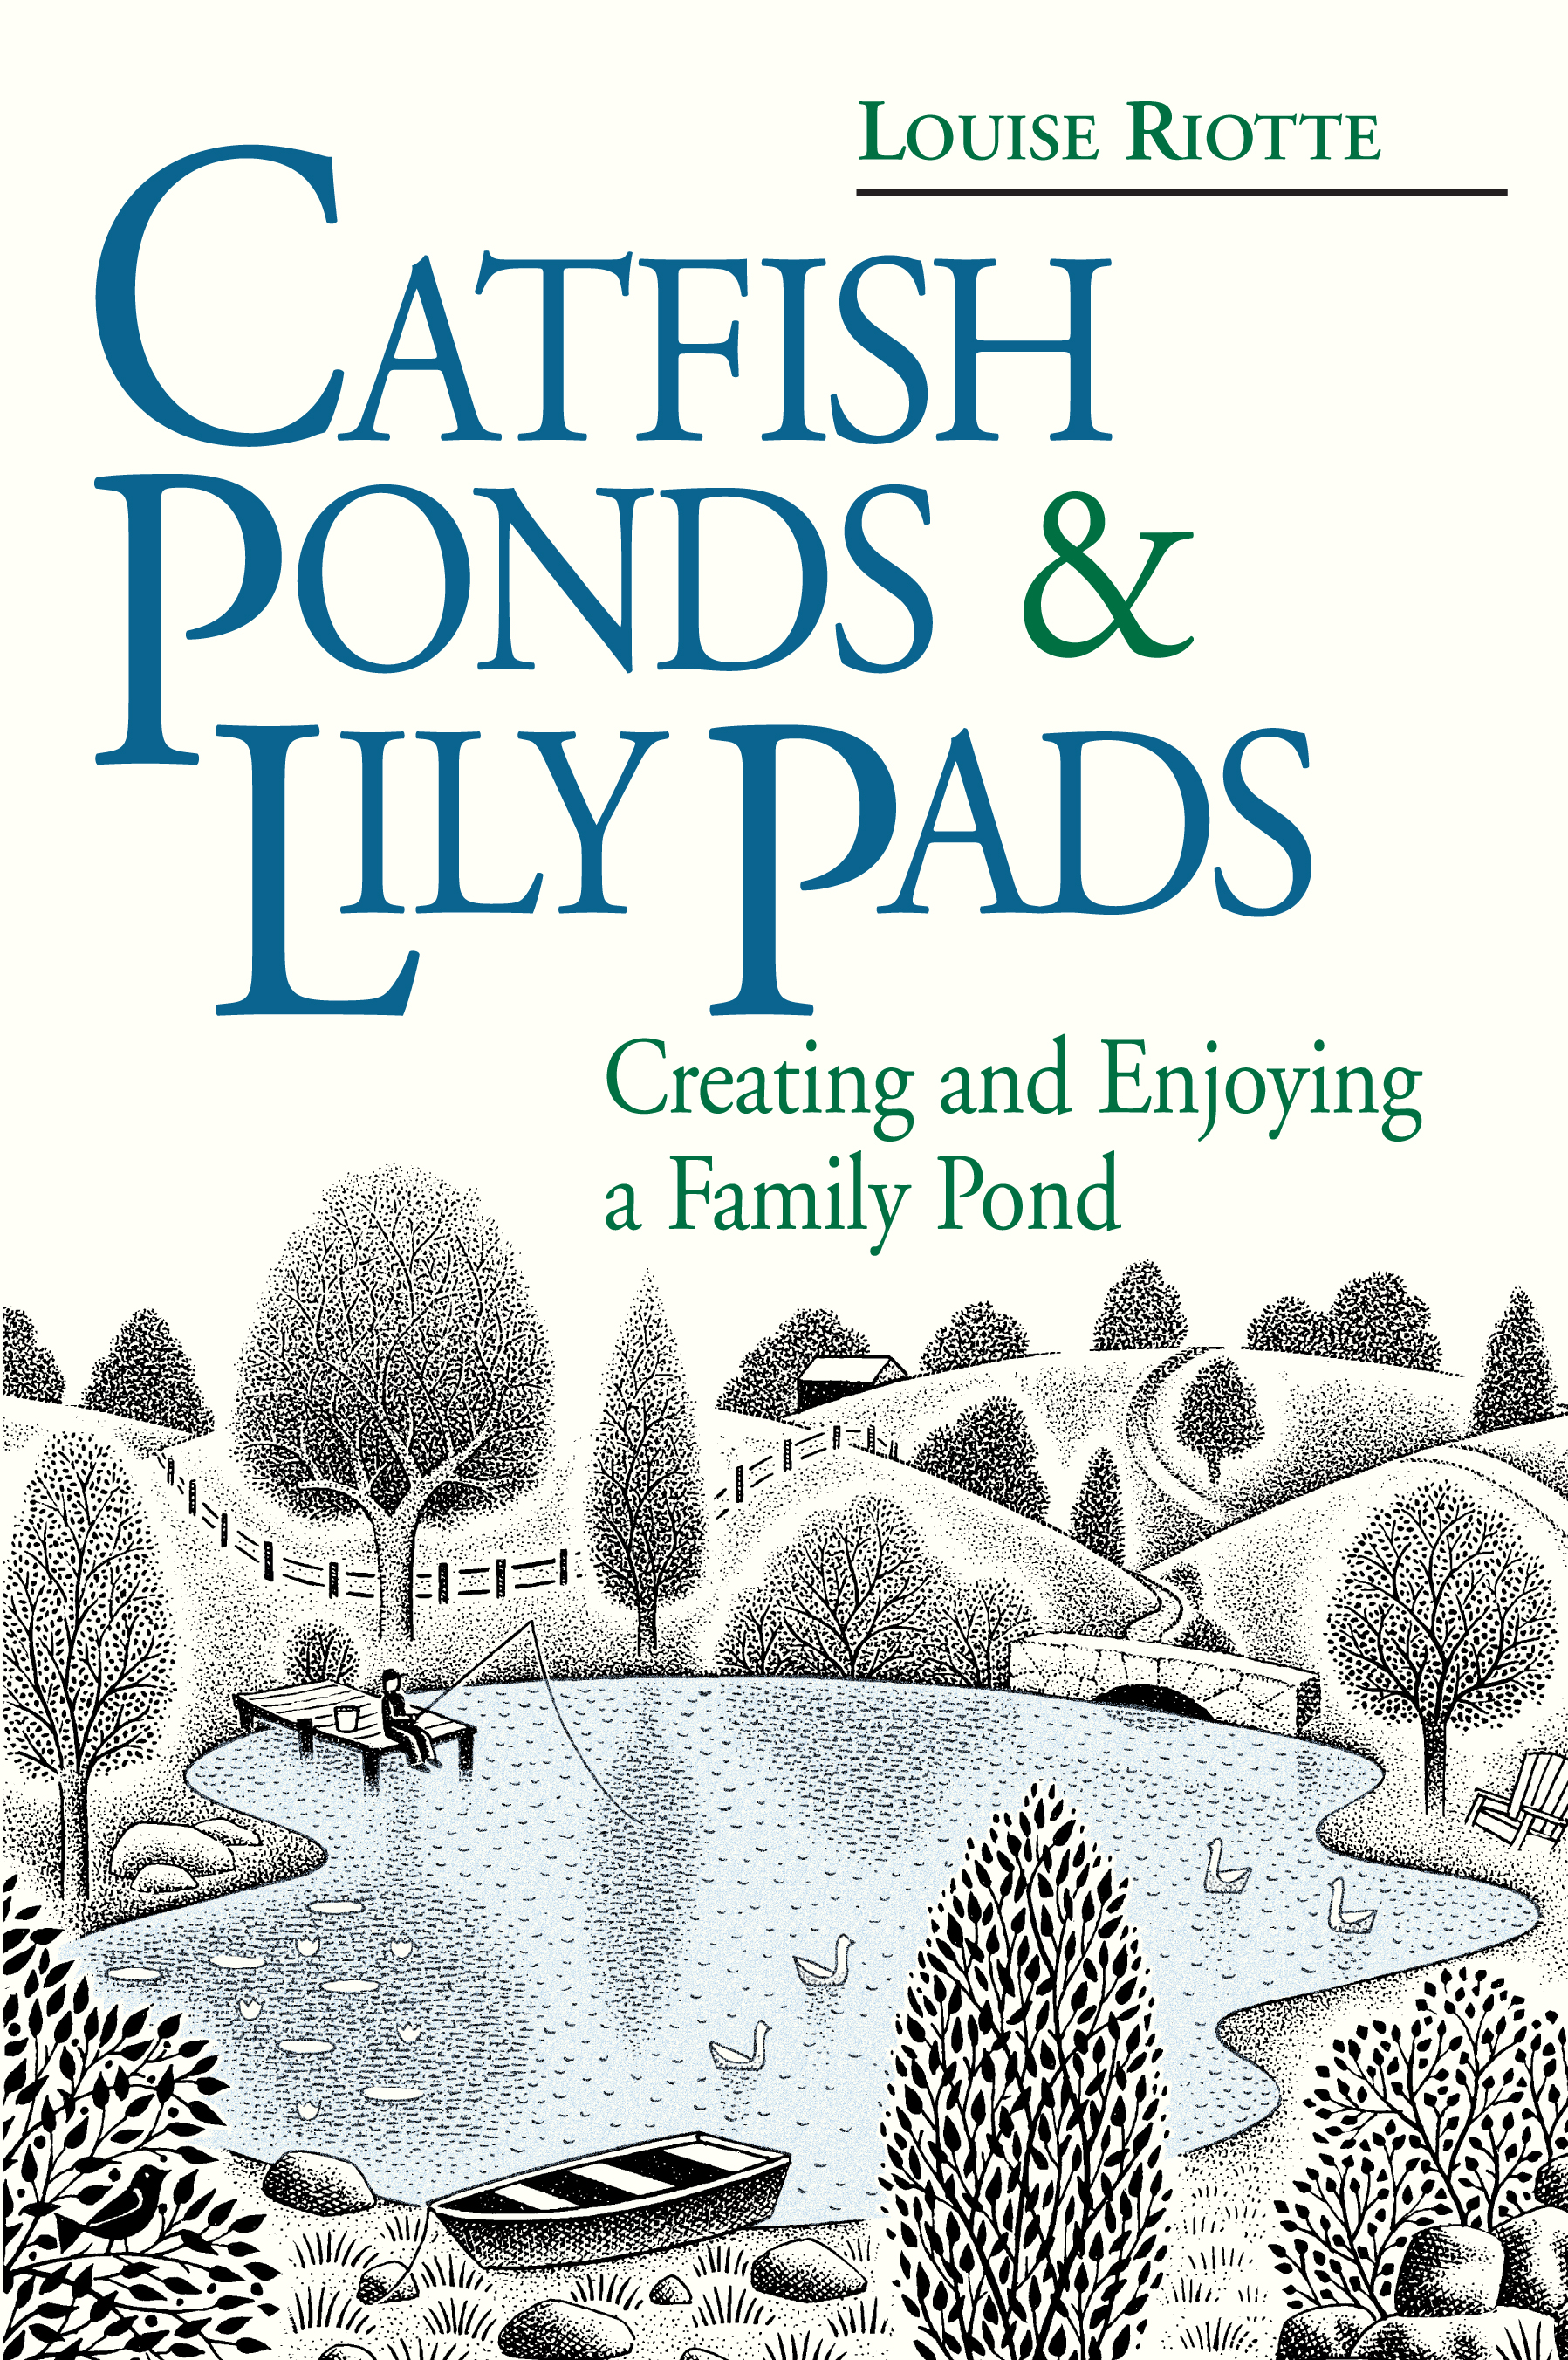 Catfish Ponds & Lily Pads Creating and Enjoying a Family Pond - Louise Riotte